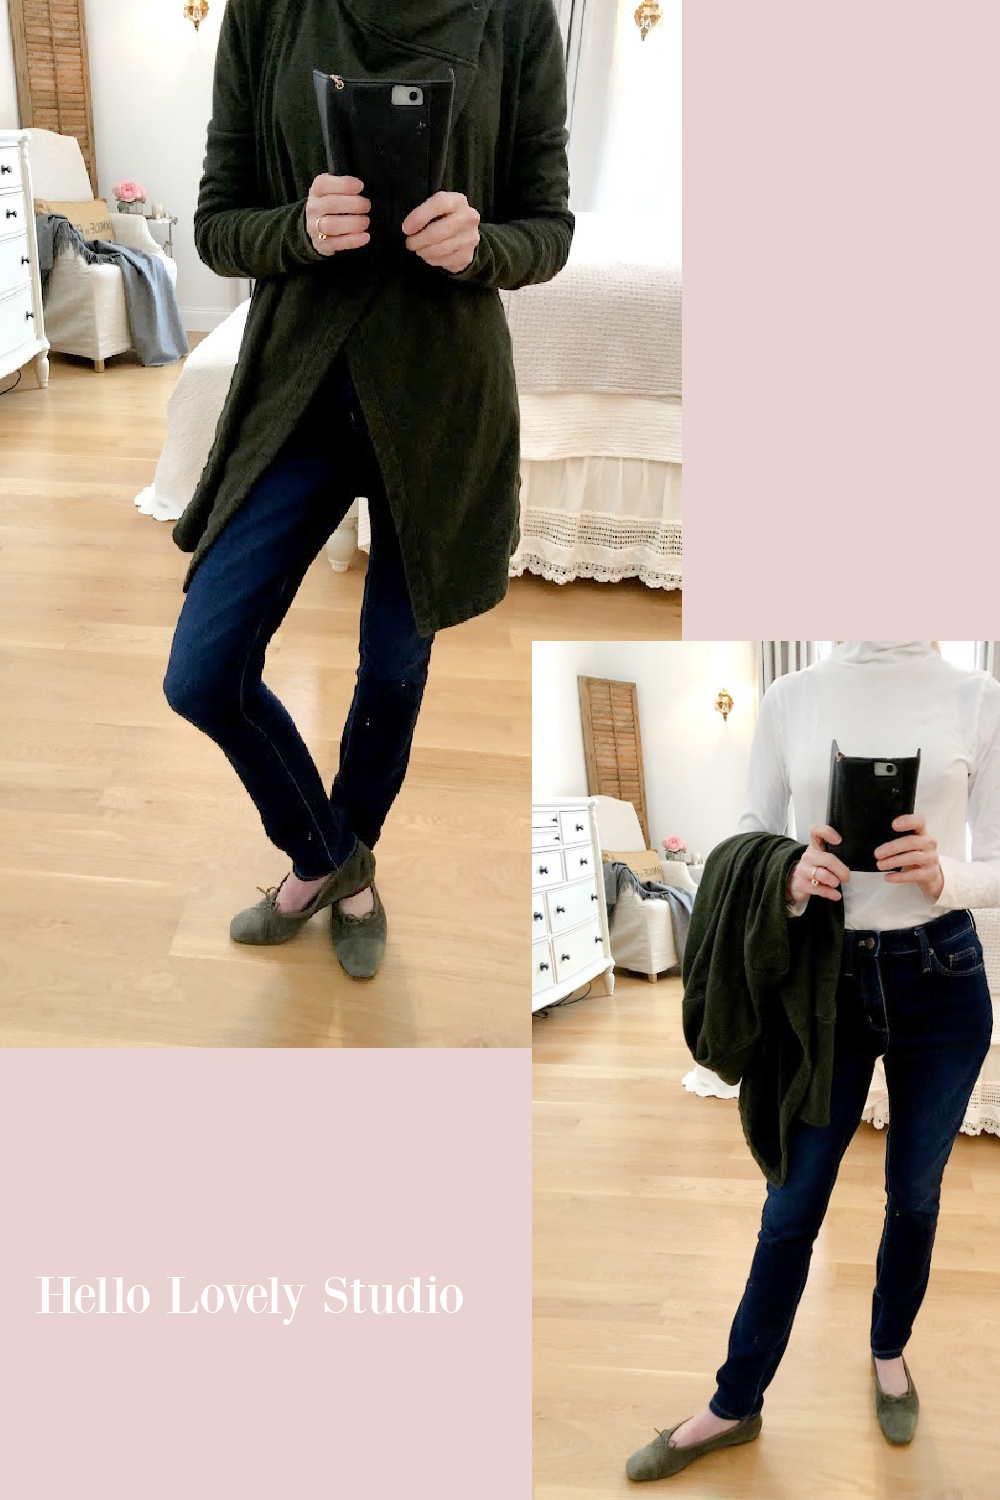 Hello Lovely Studio casual winter fashion over 50 - French terry assymetrical wrap, skinny jeans, white turtleneck, green suede Chanel flats. #fashionover50 #casual #chanelflats